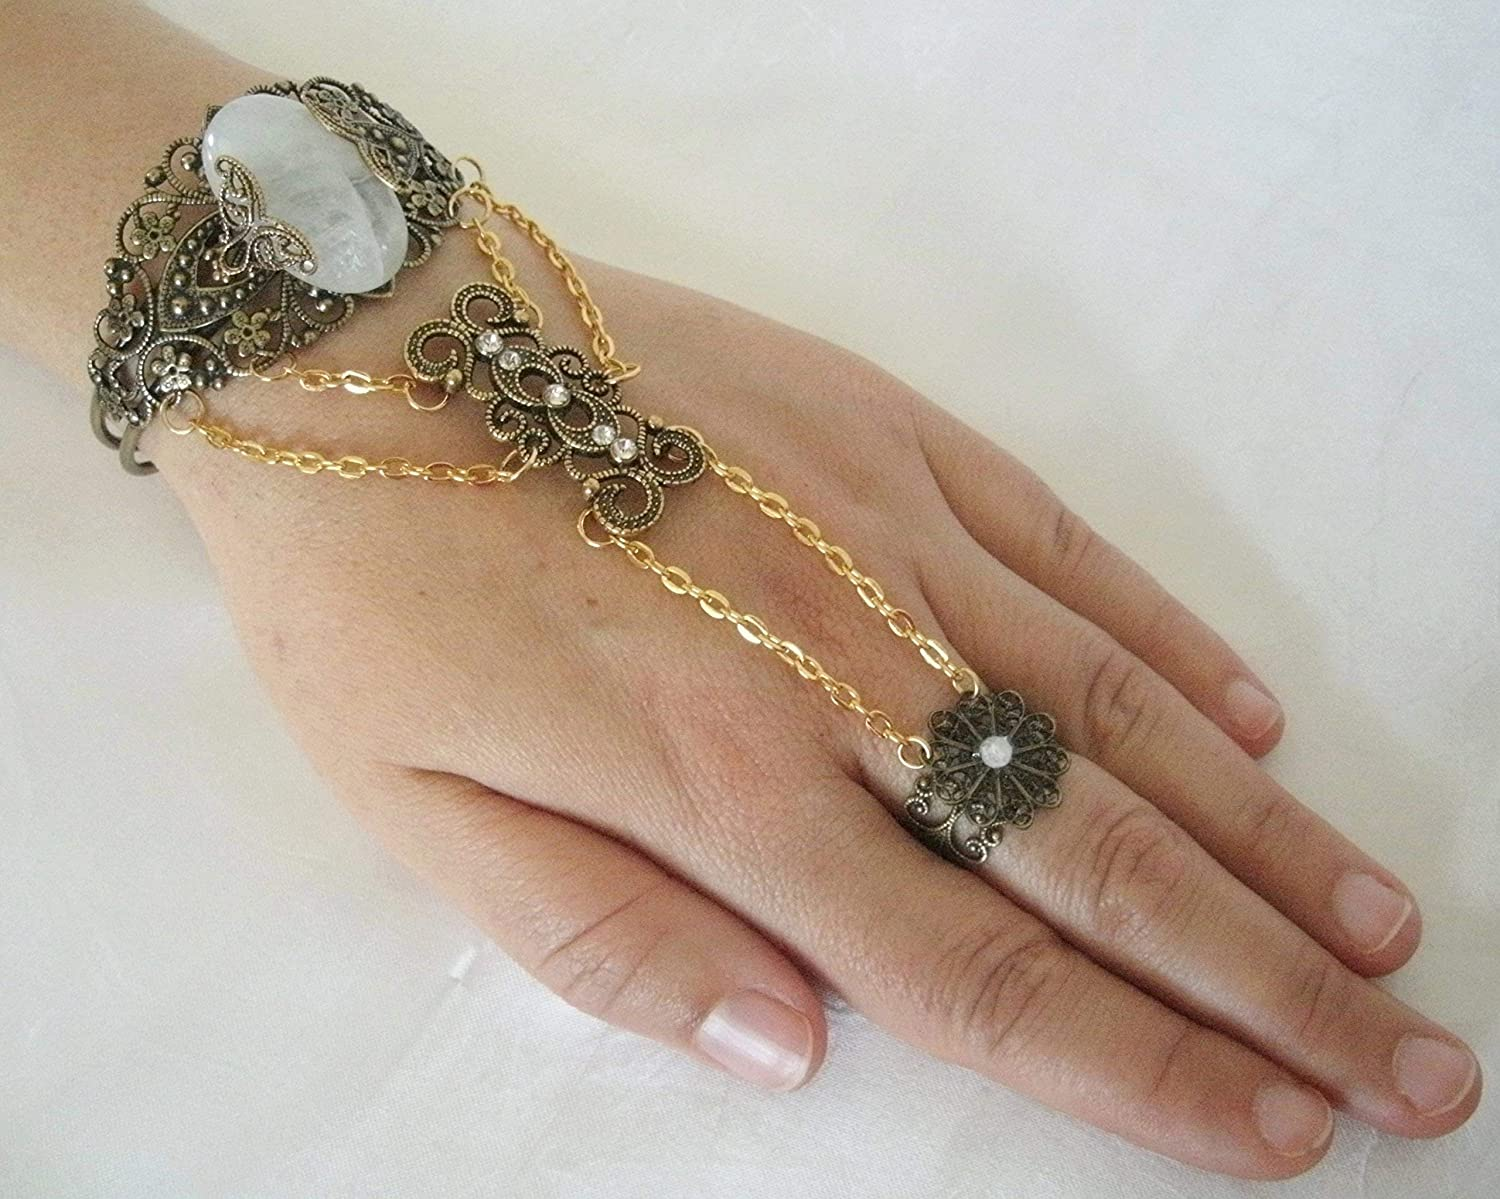 Angel Wings Thumb Hand Chain Thumb Slave Bracelet Rare Antique Gem Slave Bracelet Boho Bracelet Gold Feather Ring Harness Bohemian Bracelet